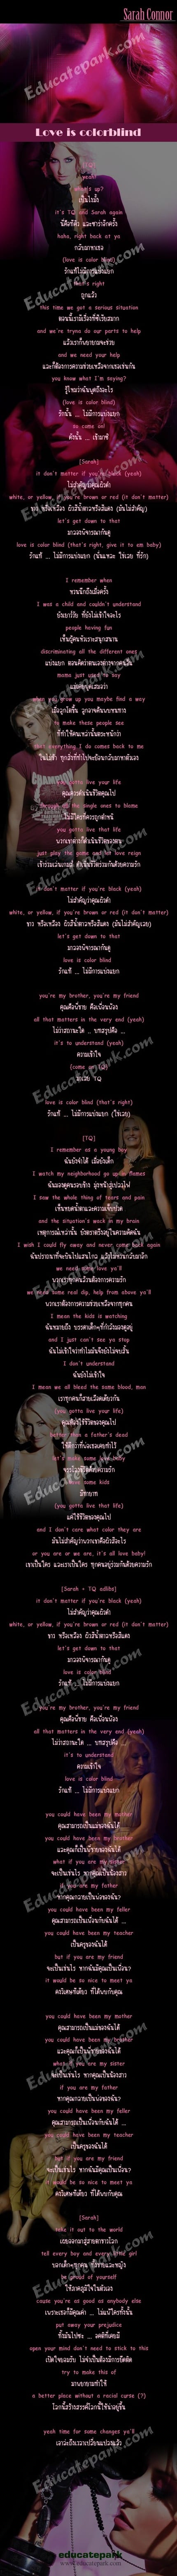 แปลเพลง Love is Color Blind - Sarah Connor